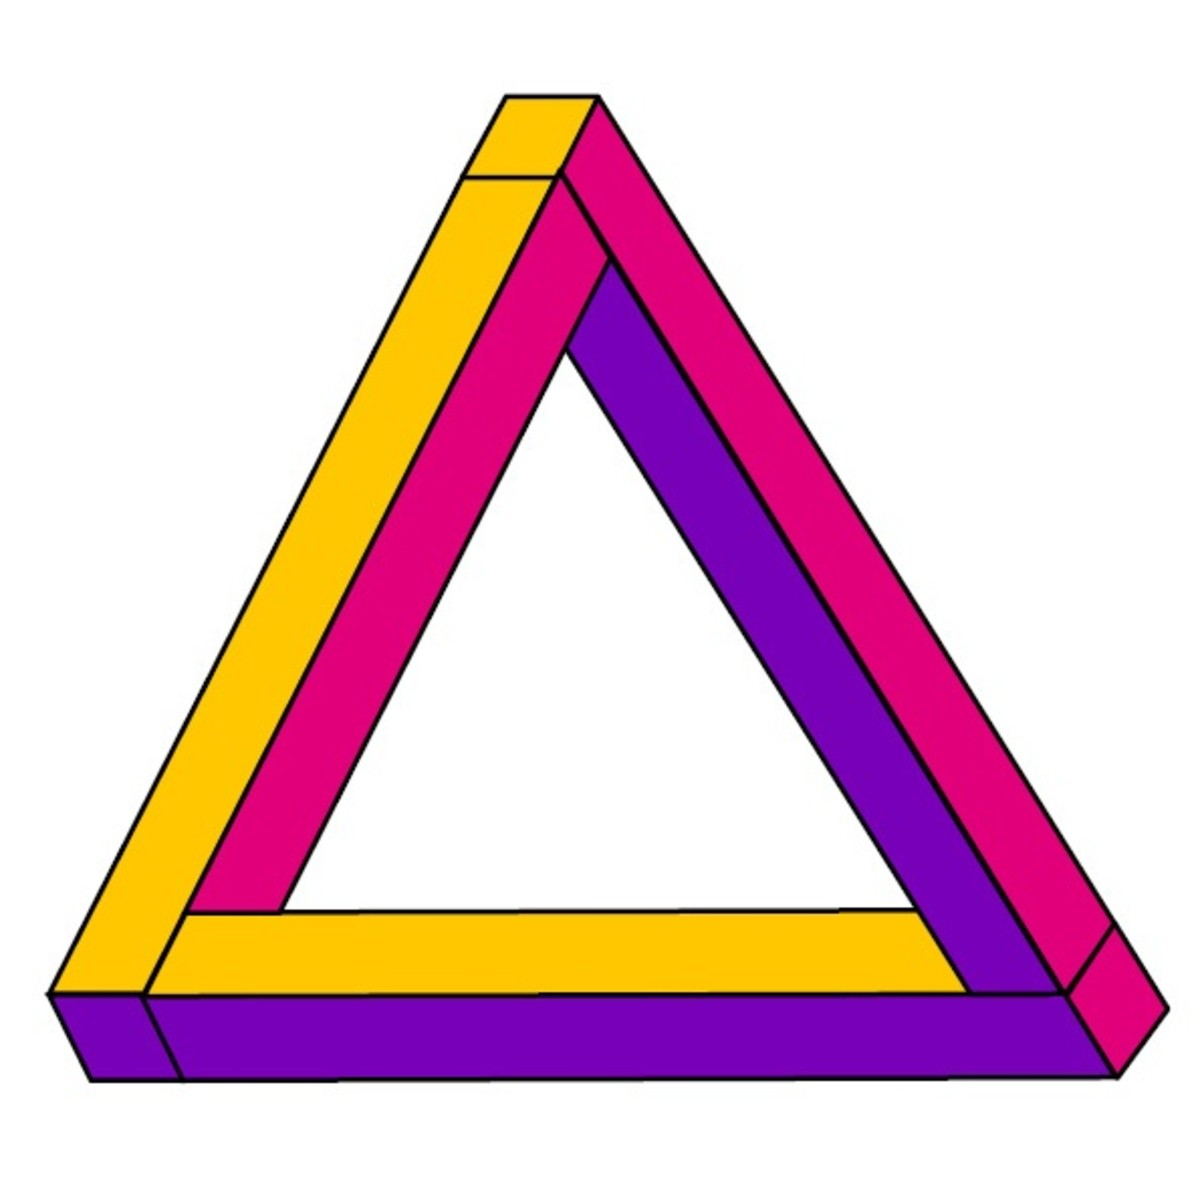 The impossible triangle